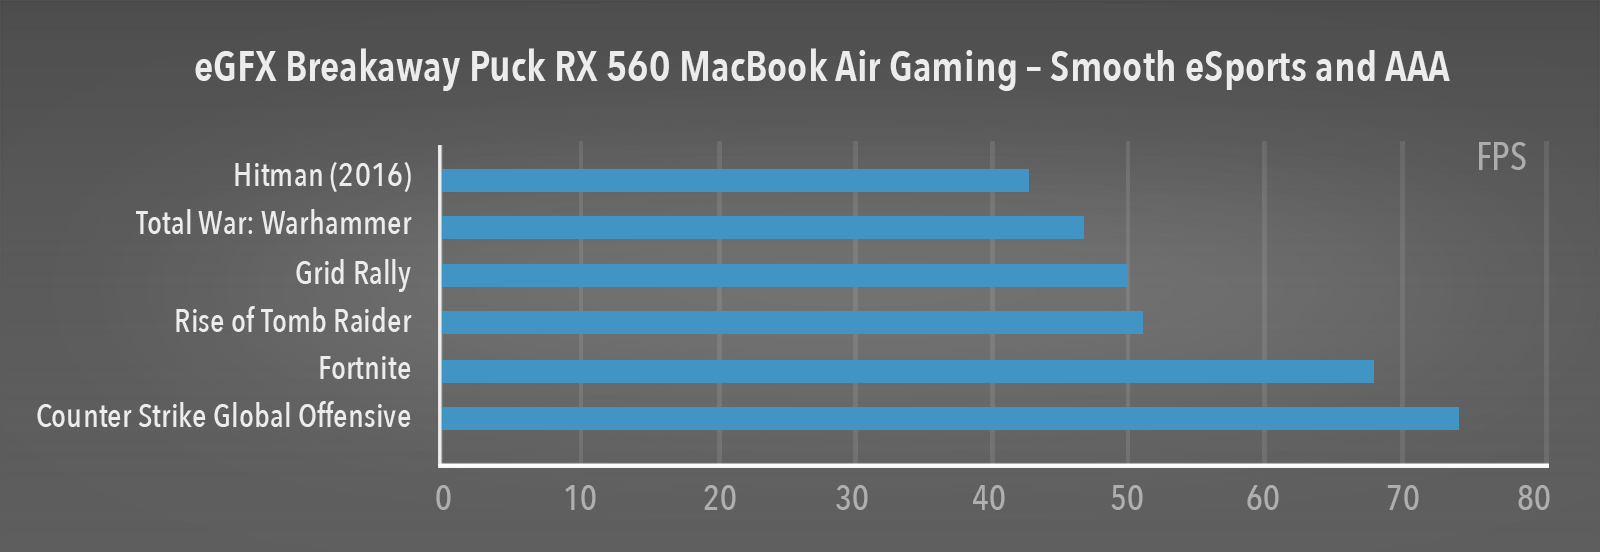 MacBook Air Gaming Performance Charts